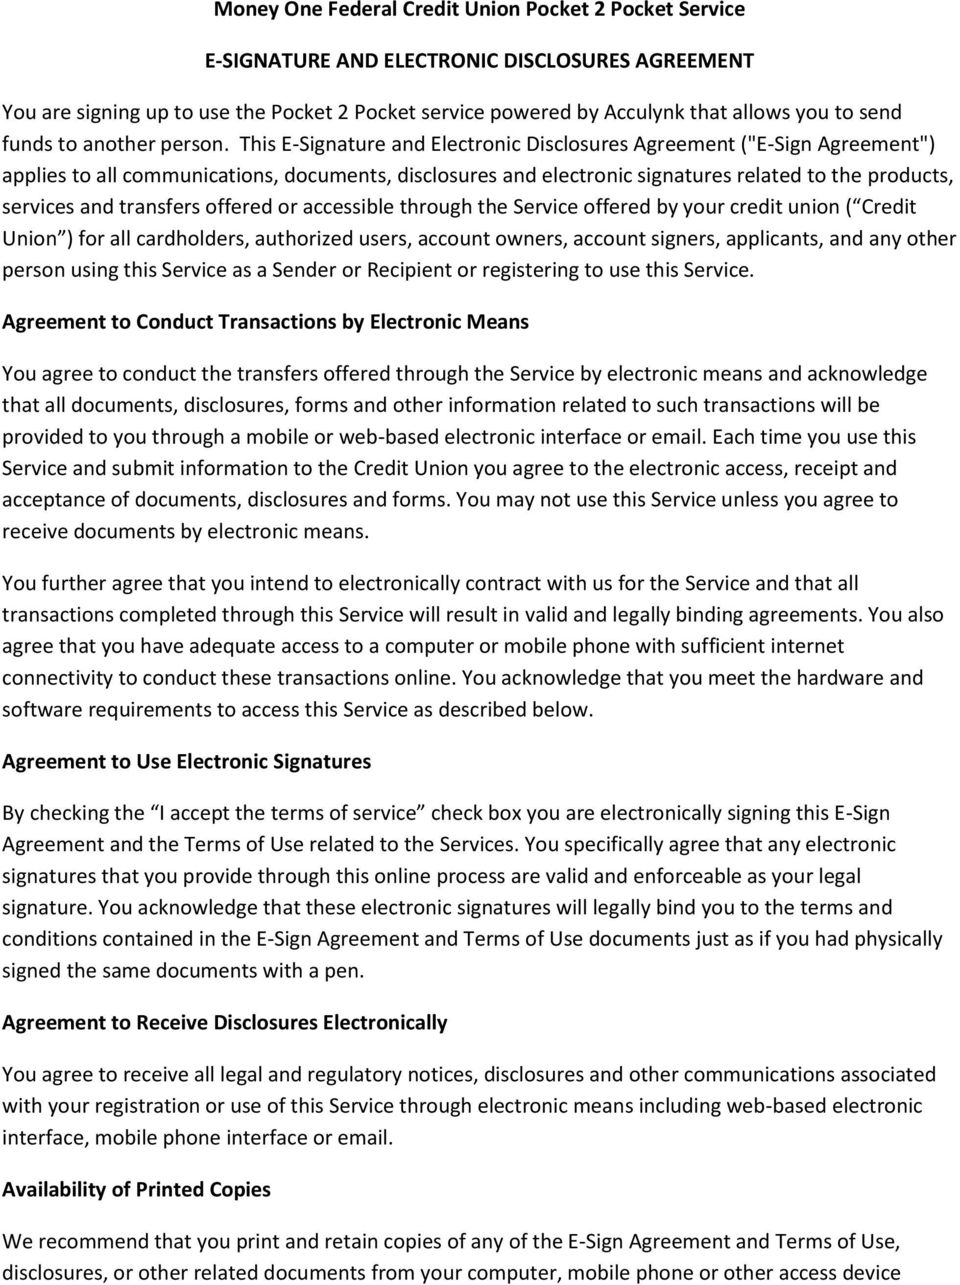 "This E-Signature and Electronic Disclosures Agreement (""E-Sign Agreement"") applies to all communications, documents, disclosures and electronic signatures related to the products, services and"